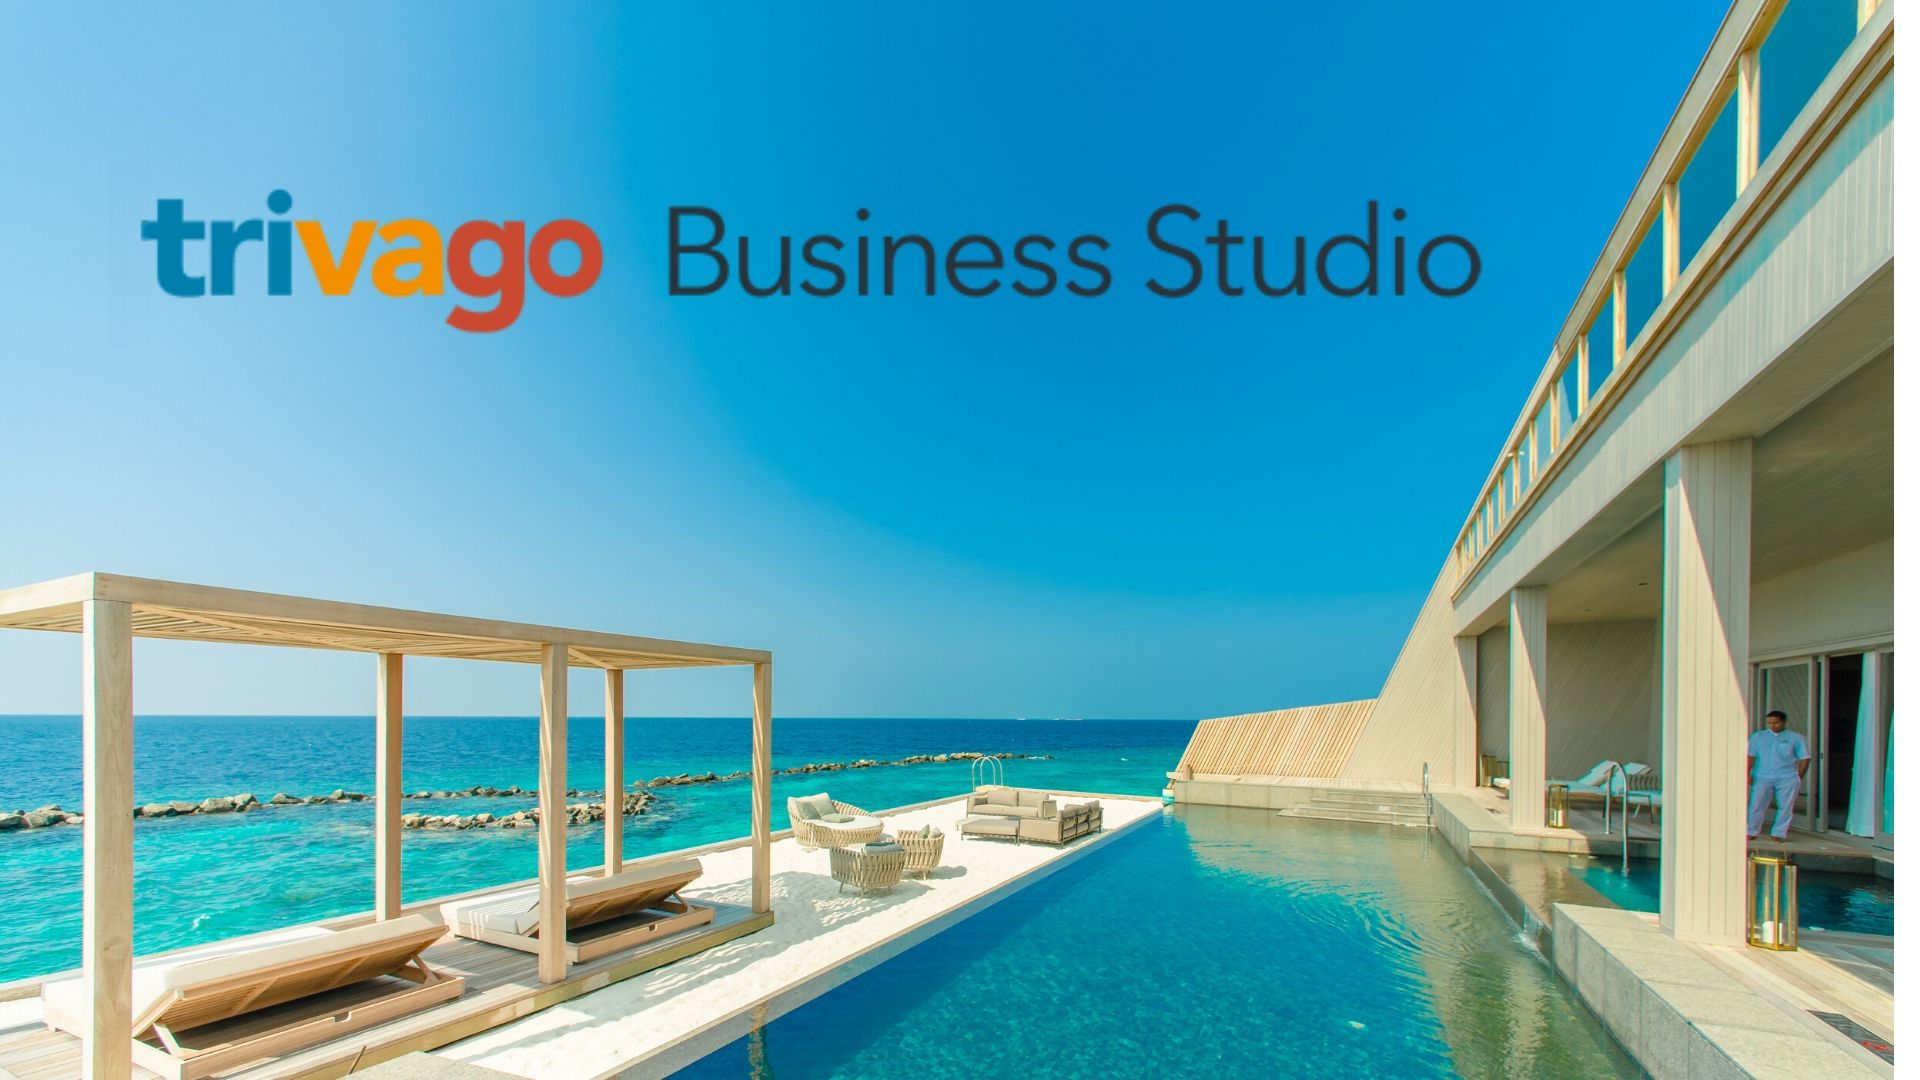 Improve your visibility with trivago Business Studio